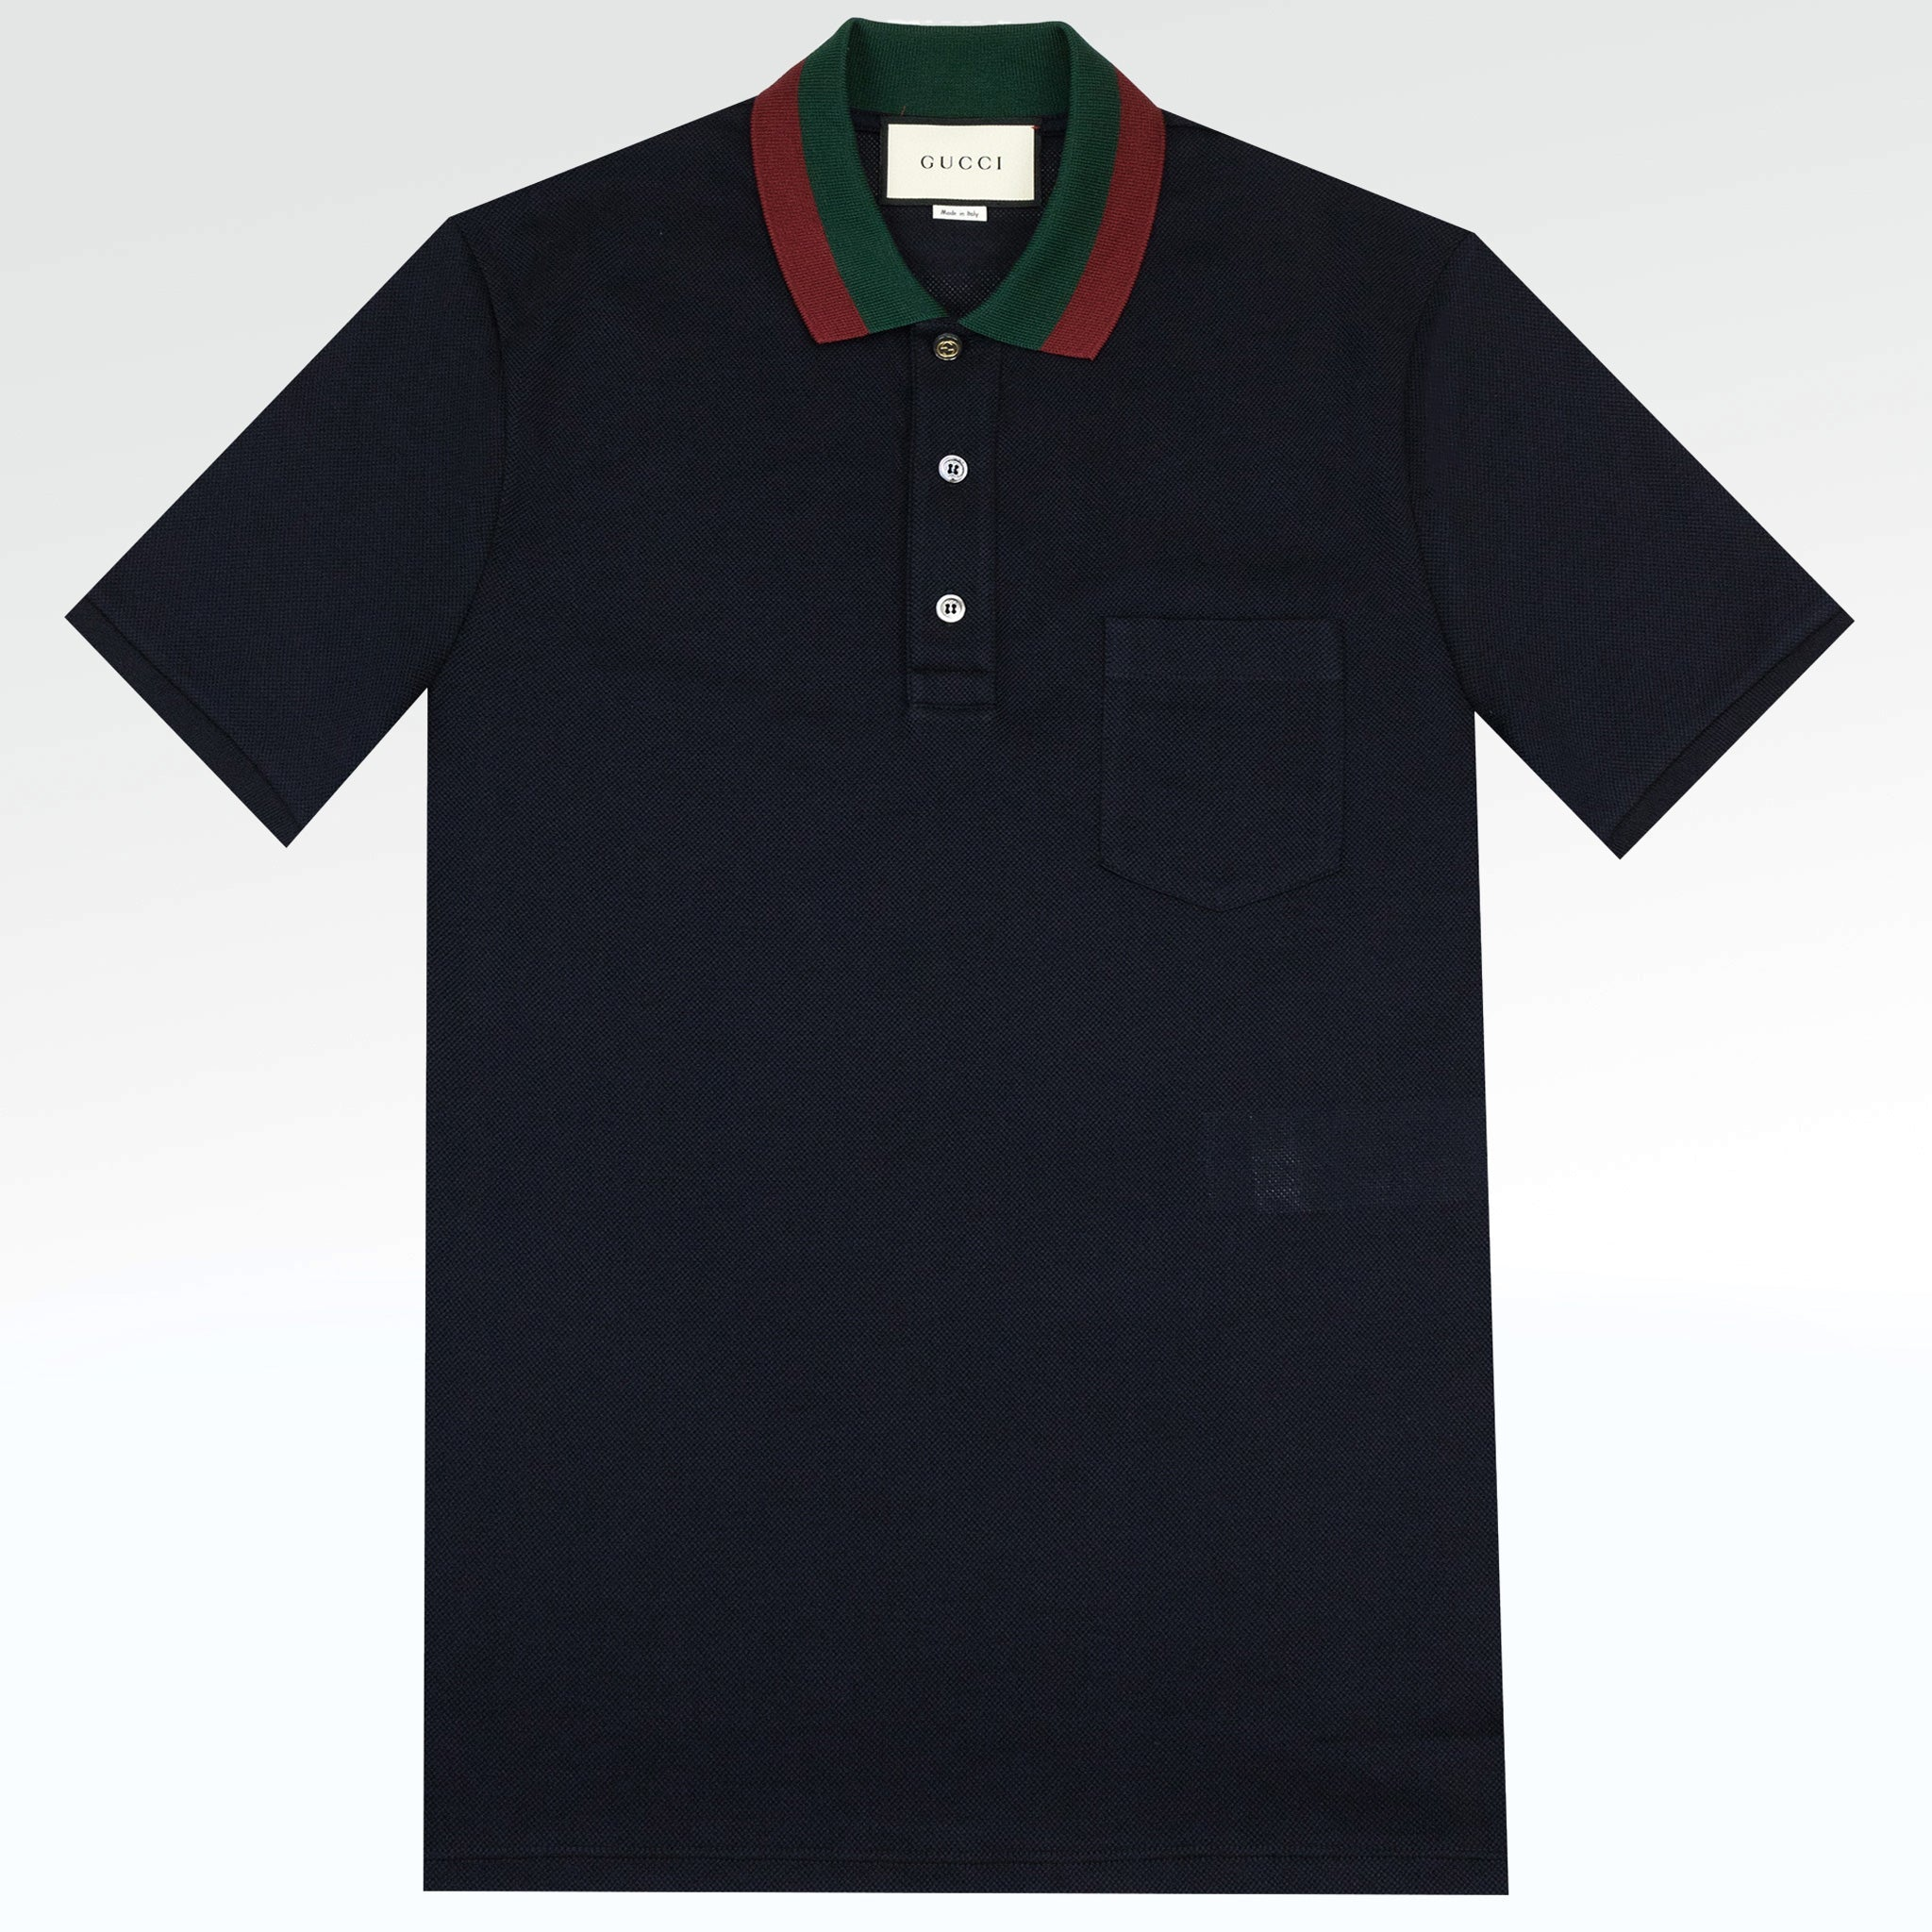 161031a0a5691 Gucci Web Collar Polo Shirt Navy – Crepslocker